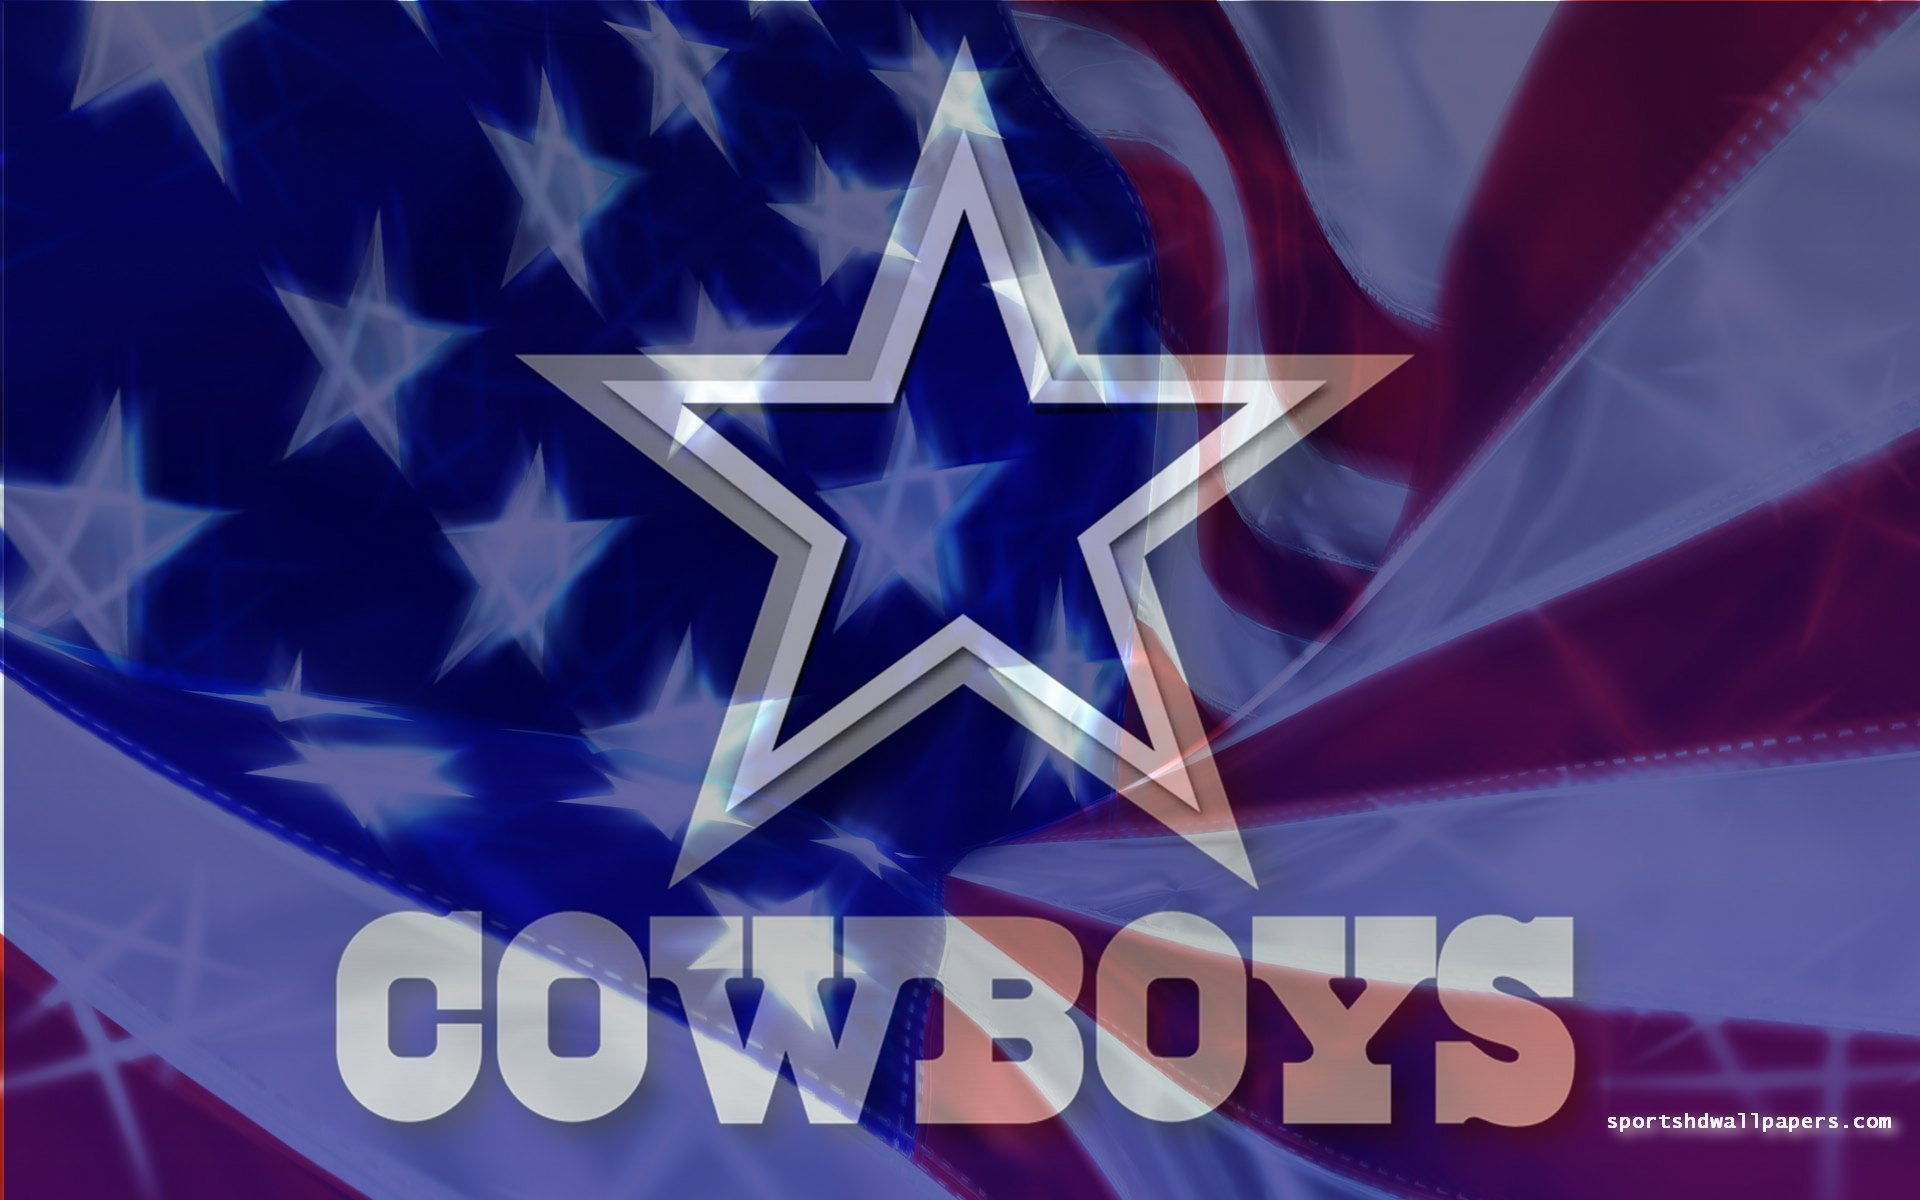 Cowboys Blog - Cowboys Hold Top Three Most Watched Games of 2015 Season